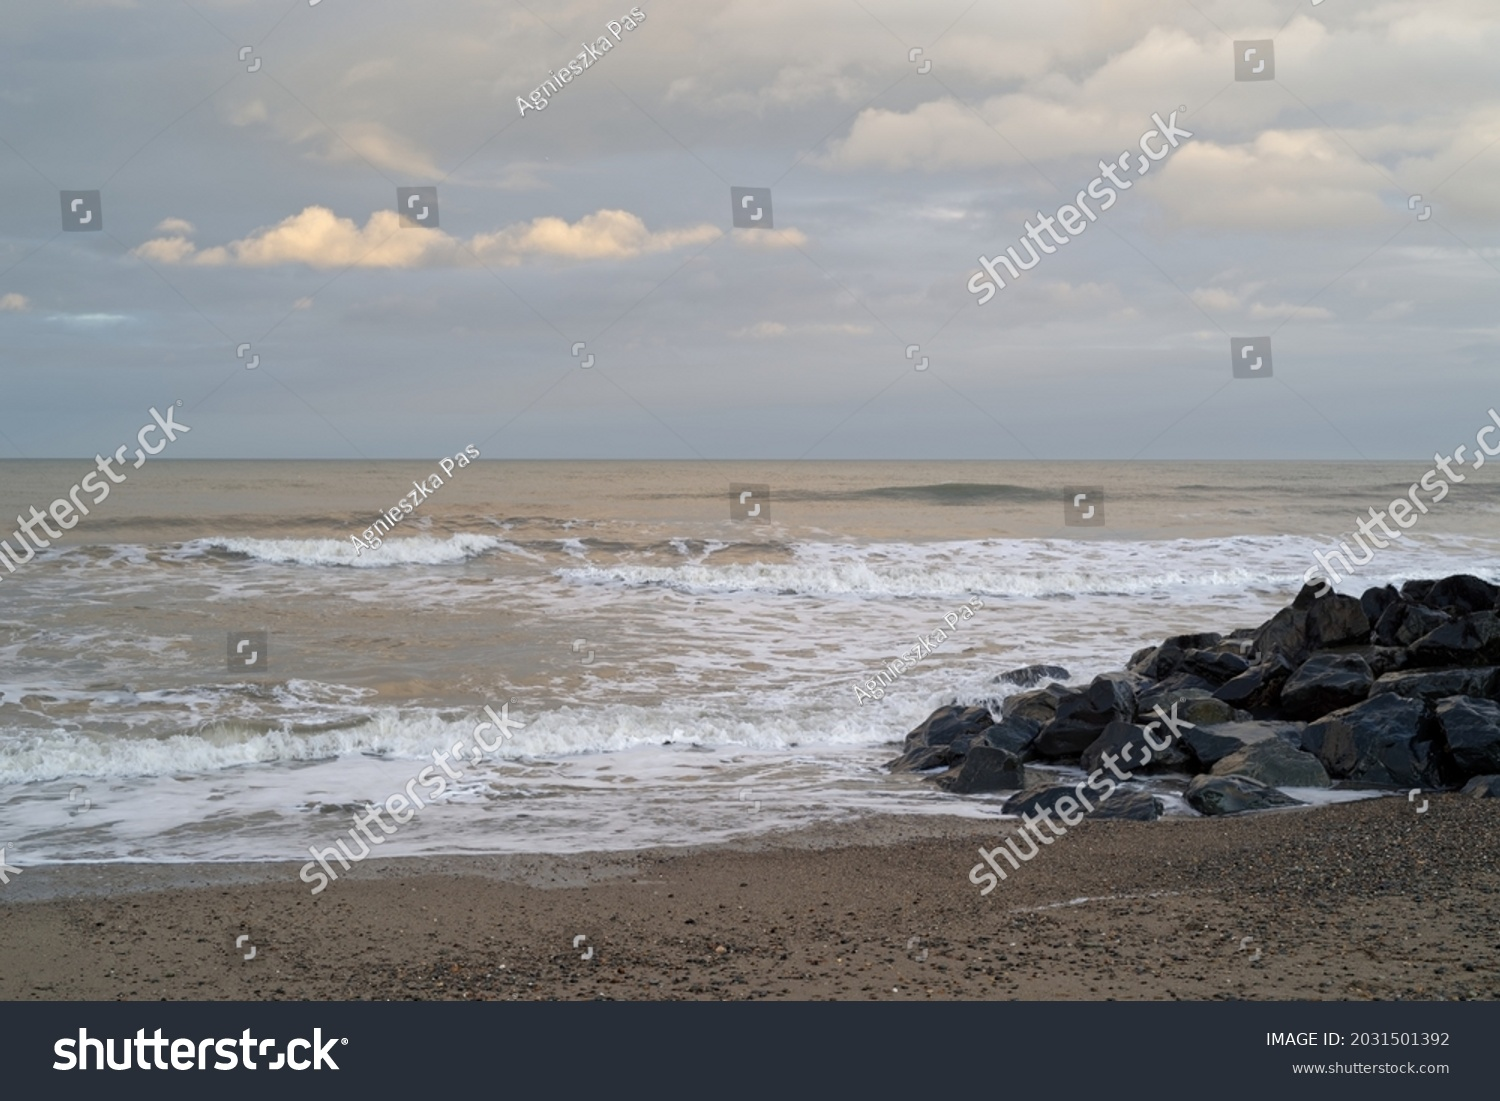 The Irish Sea seascape. Waves, rocks and pebble beach. Evening time just before sunset. Photo taken from the beach in Bray, County Wicklow, Ireland.